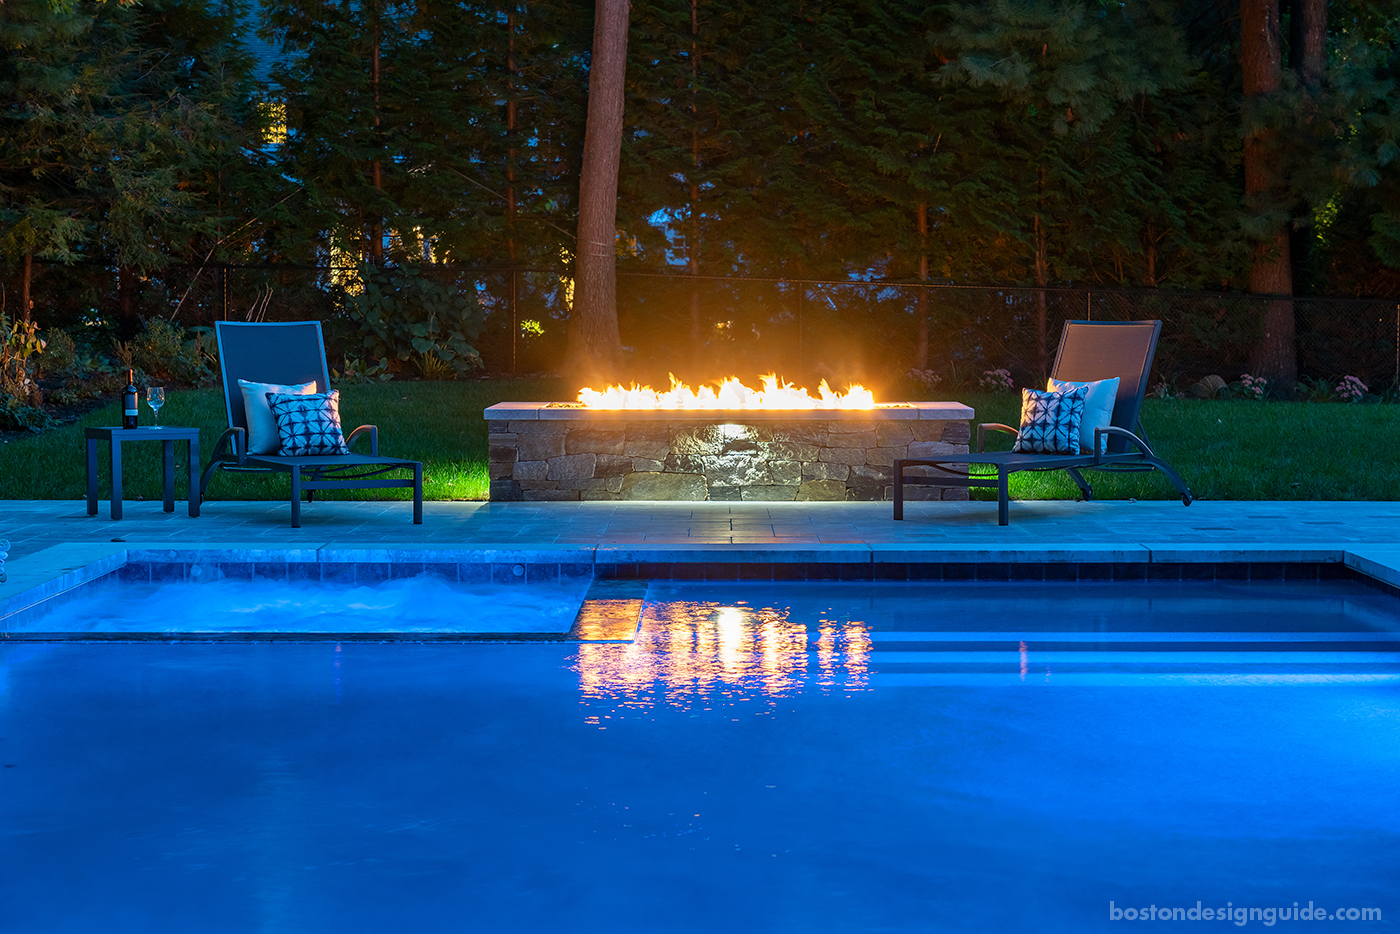 Pool terrace at night constructed by Onyx Corporation